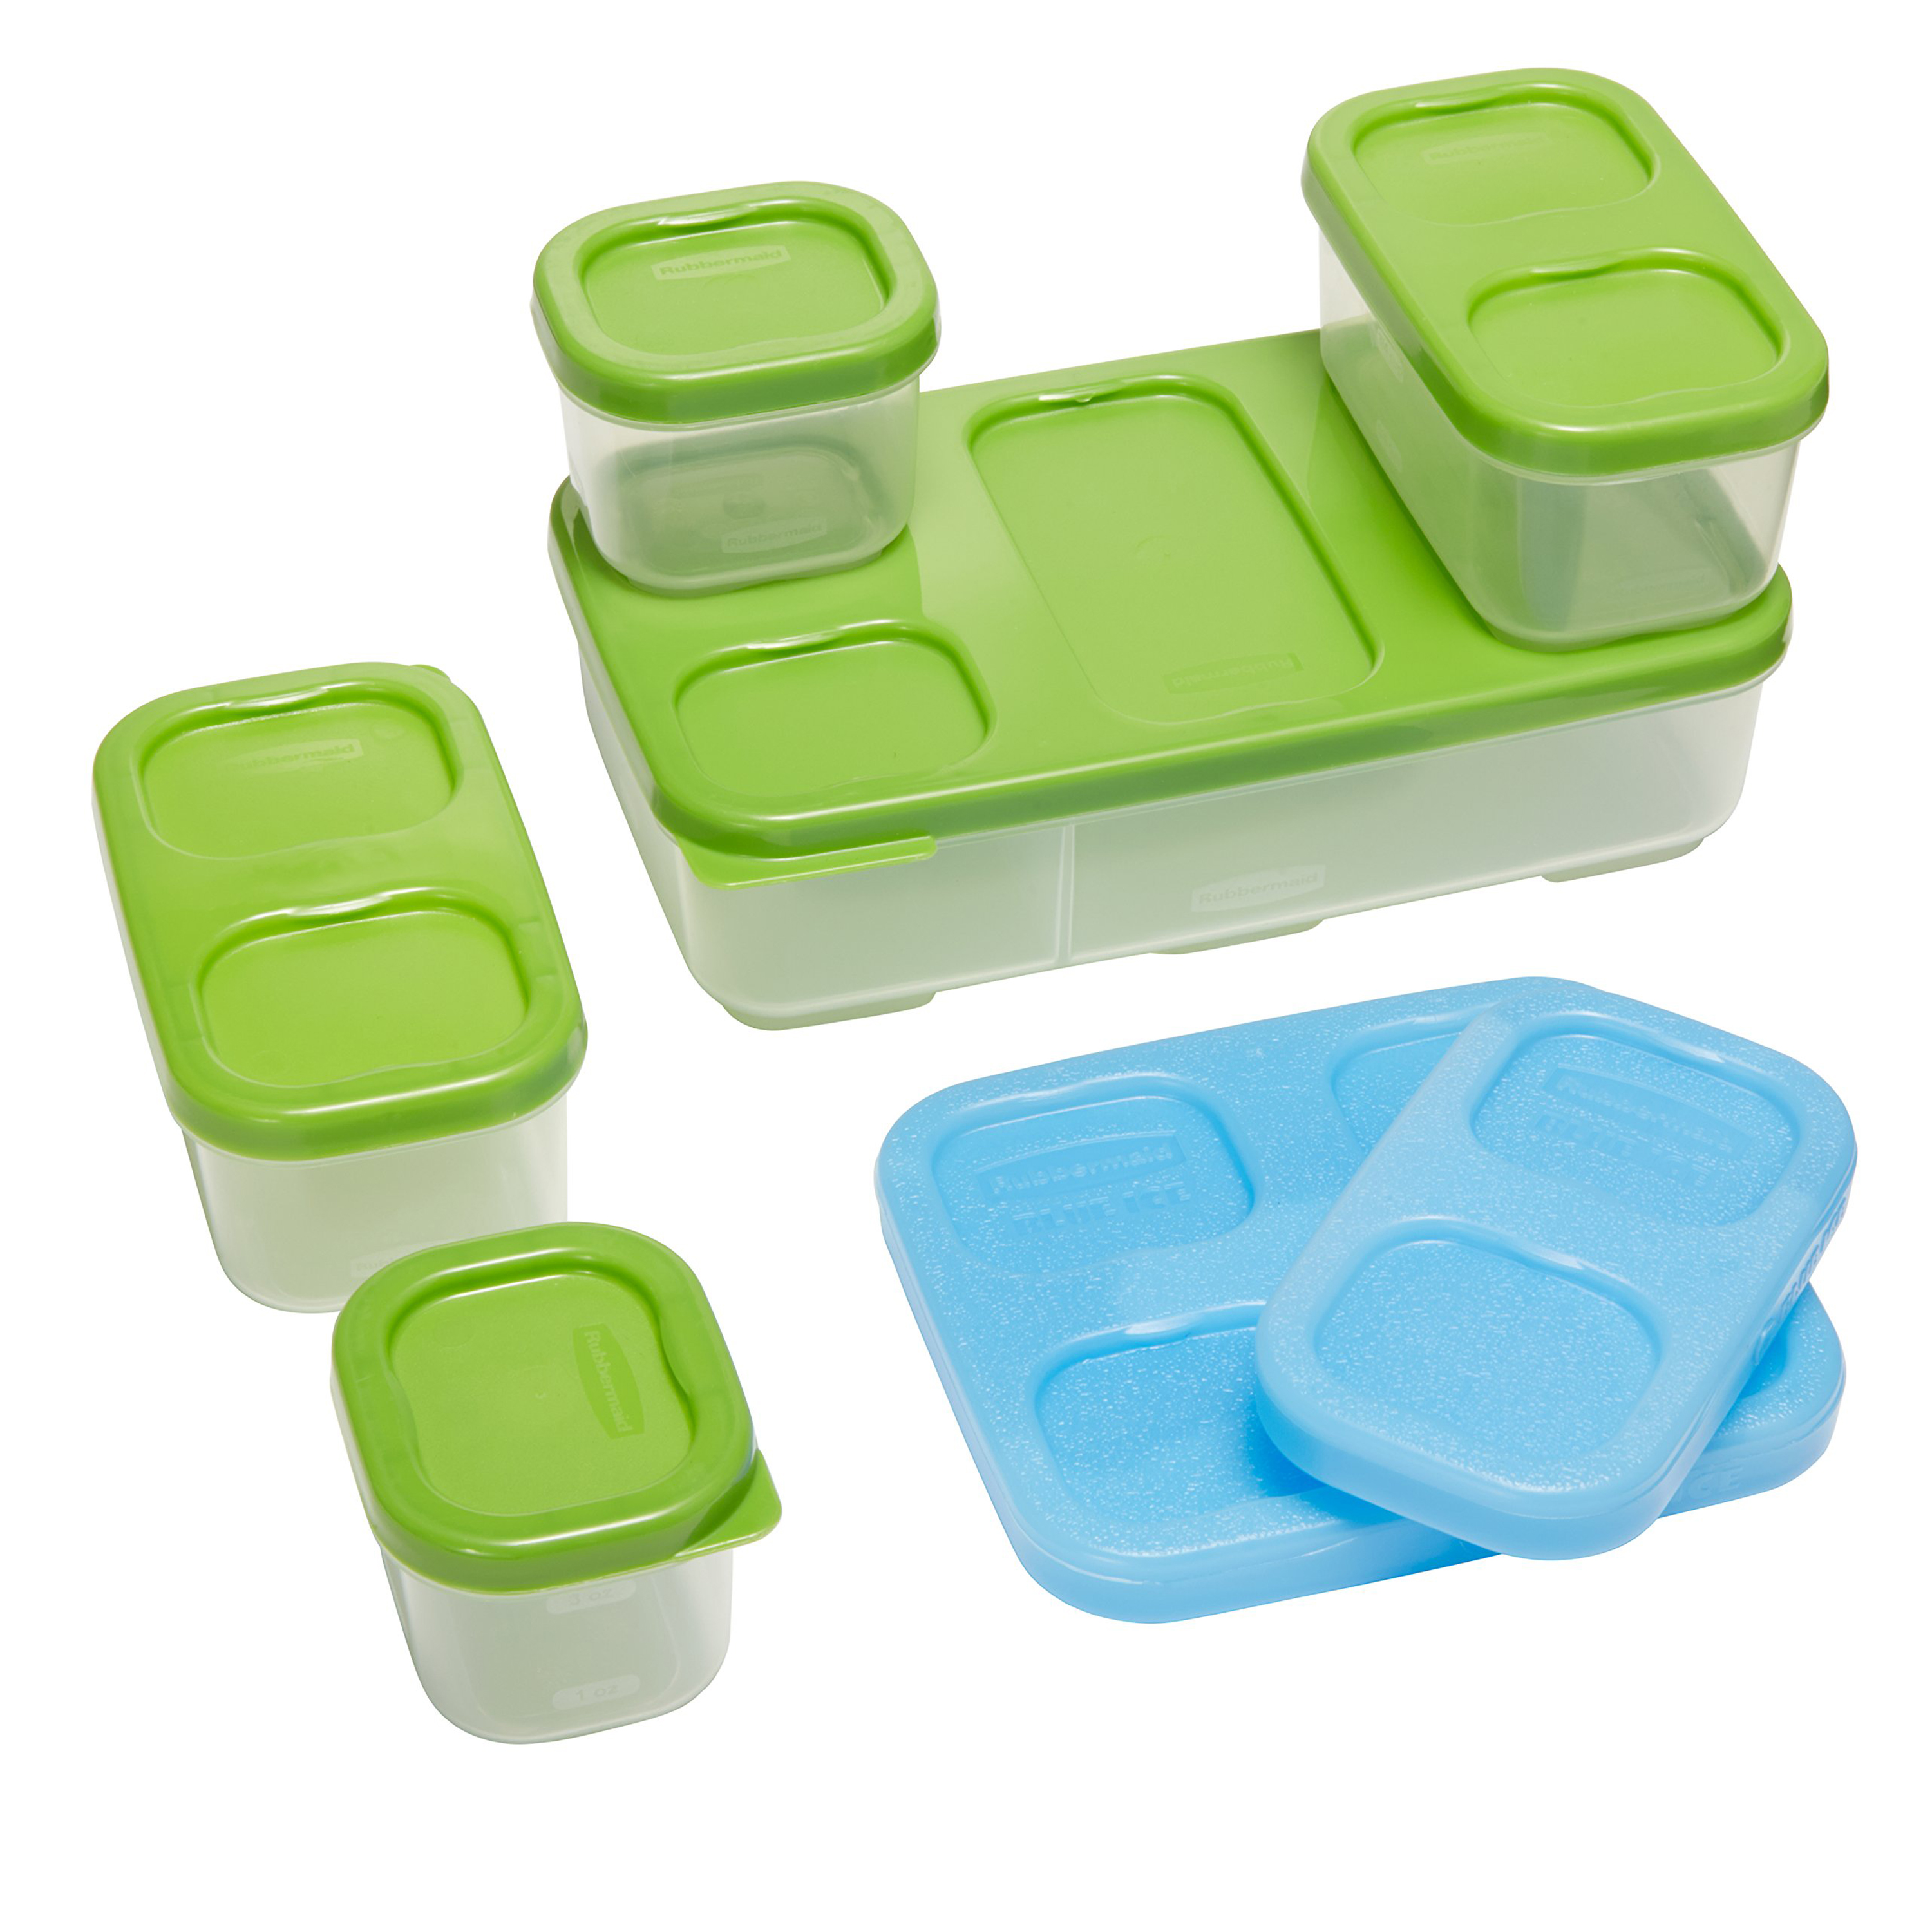 Rubbermaid LunchBlox Entrée Kit Food Container